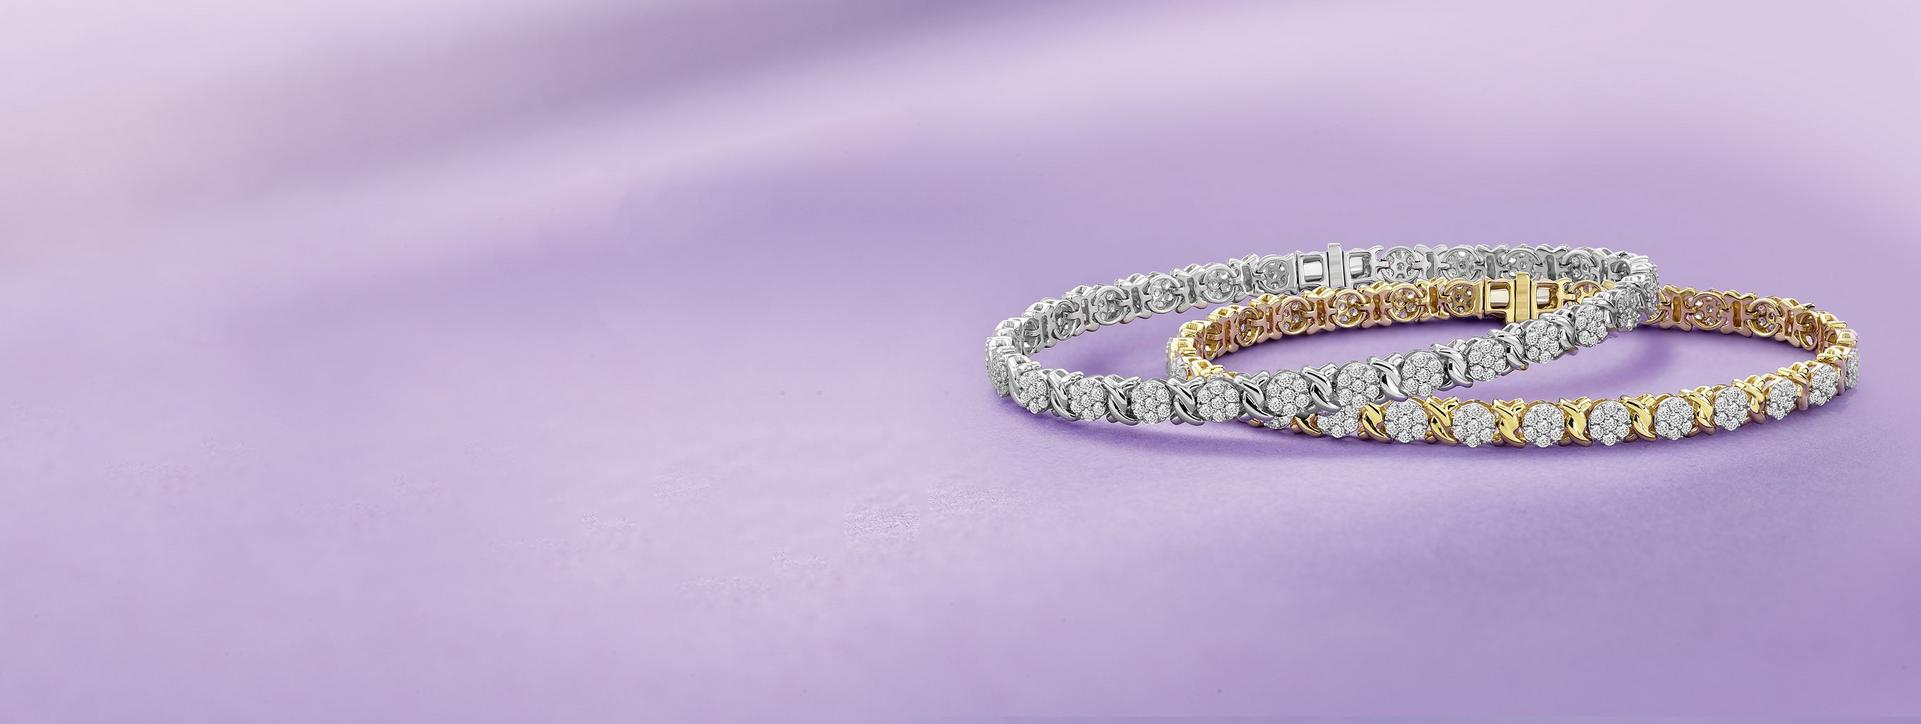 Keep the ones you cherish close to your heart this Christmas with The Classic Diamond Collection at Ernest Jones